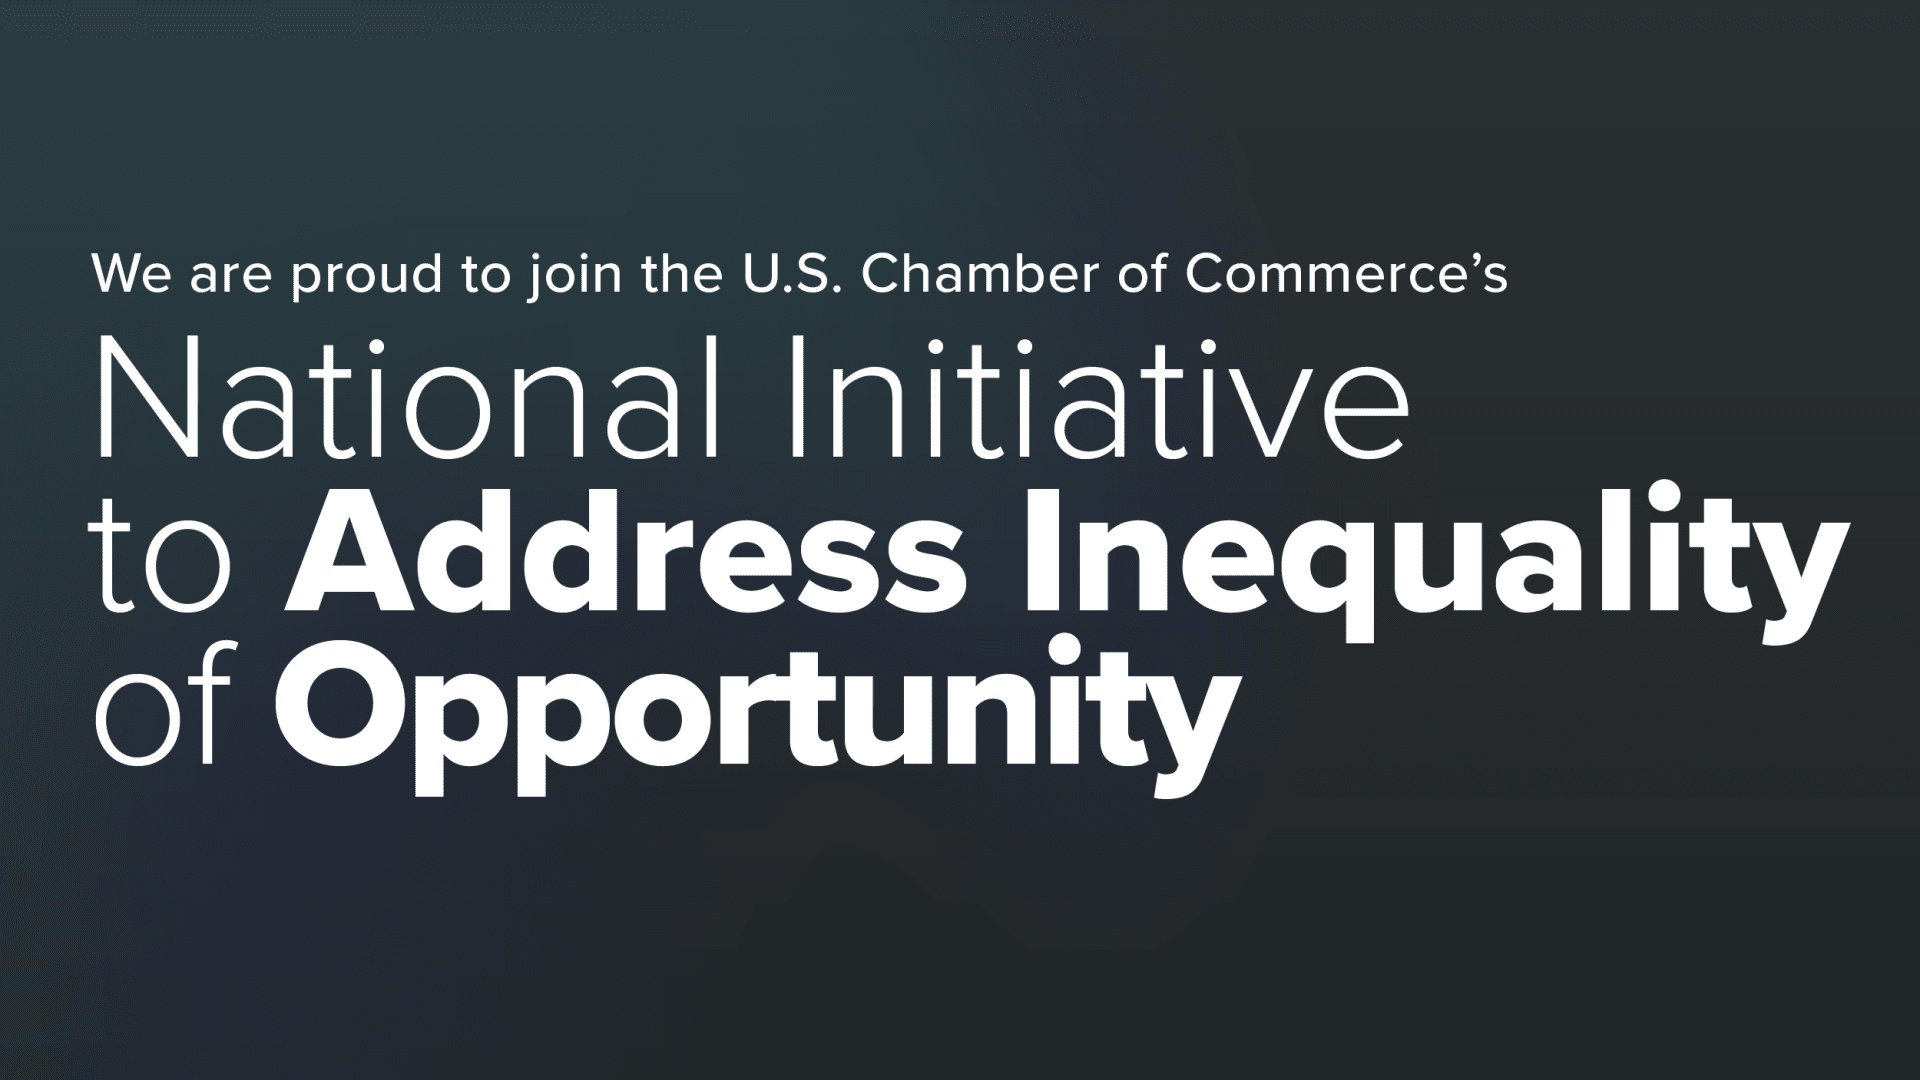 We are Proud to join the U.S. Chamber of Commerce's National Initiative to Address Inequality of Opportunity